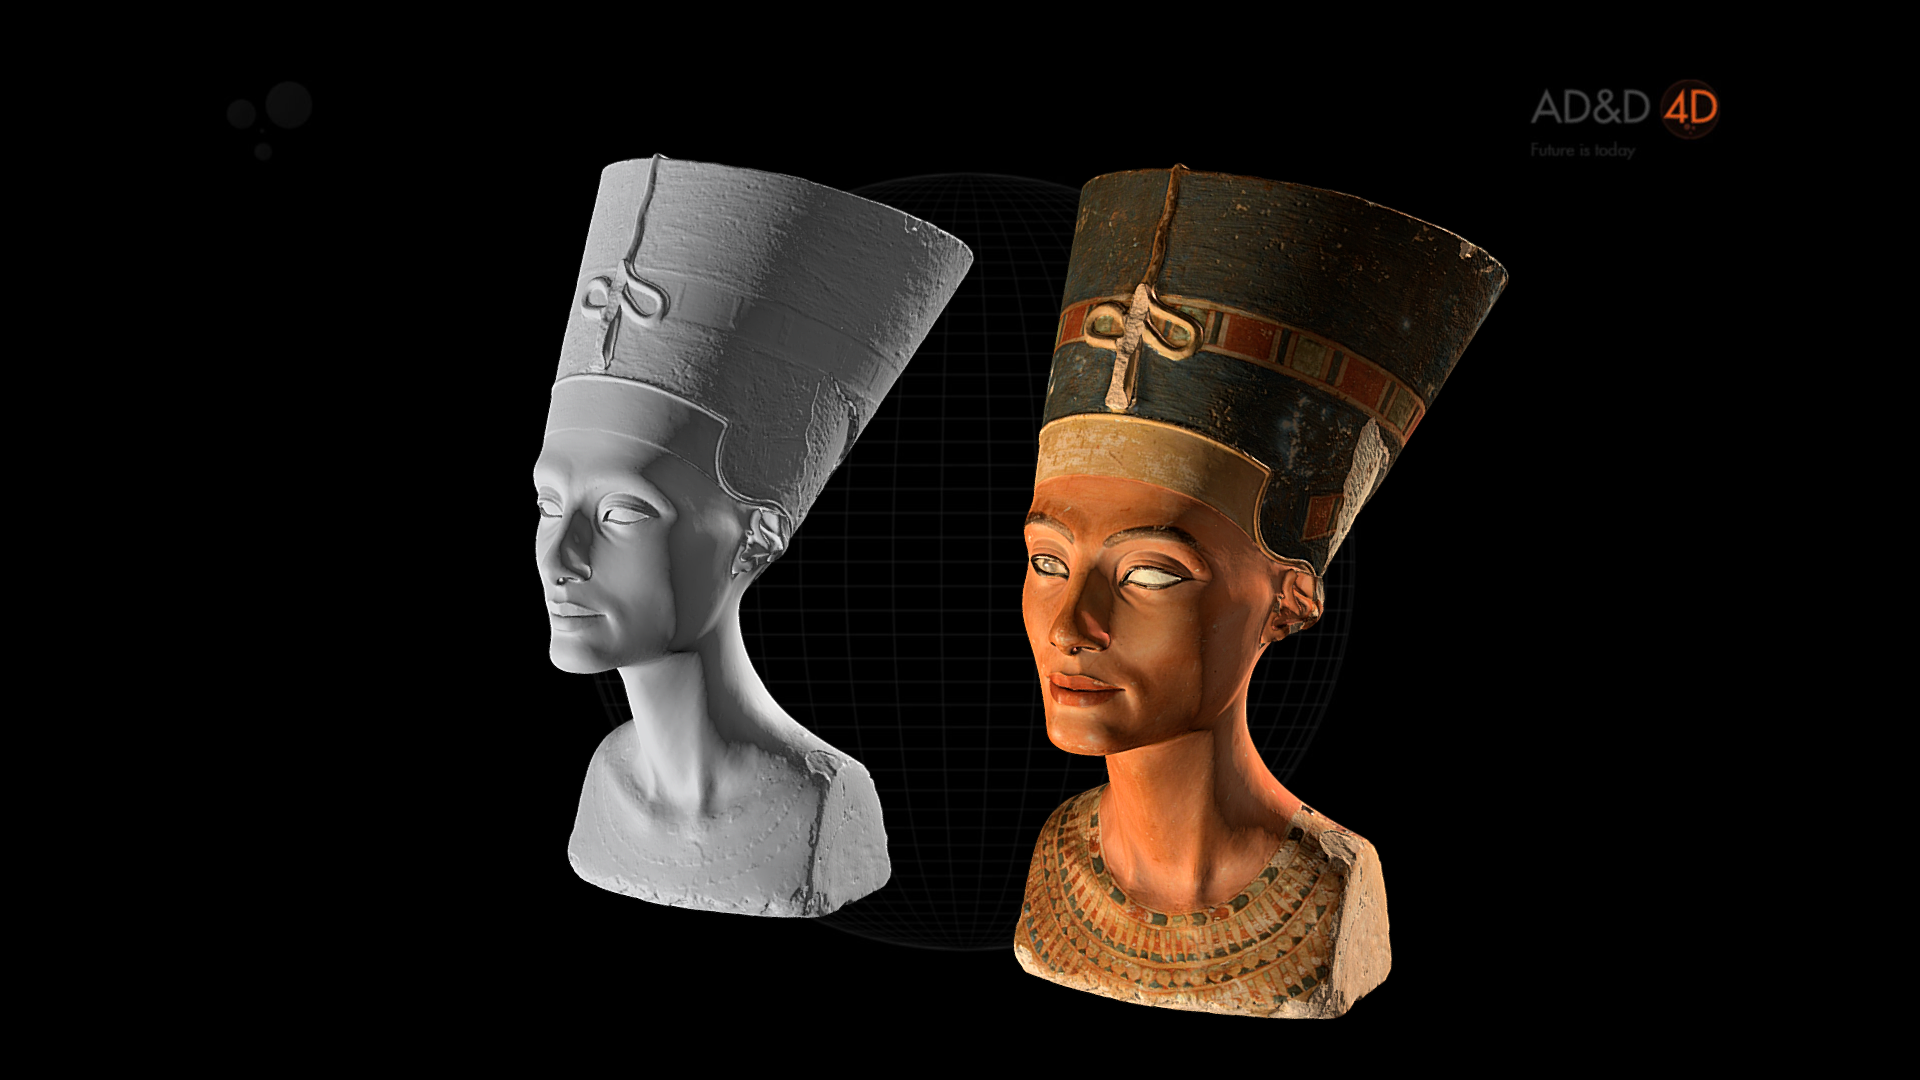 Unlit version of the Nefertiti bust